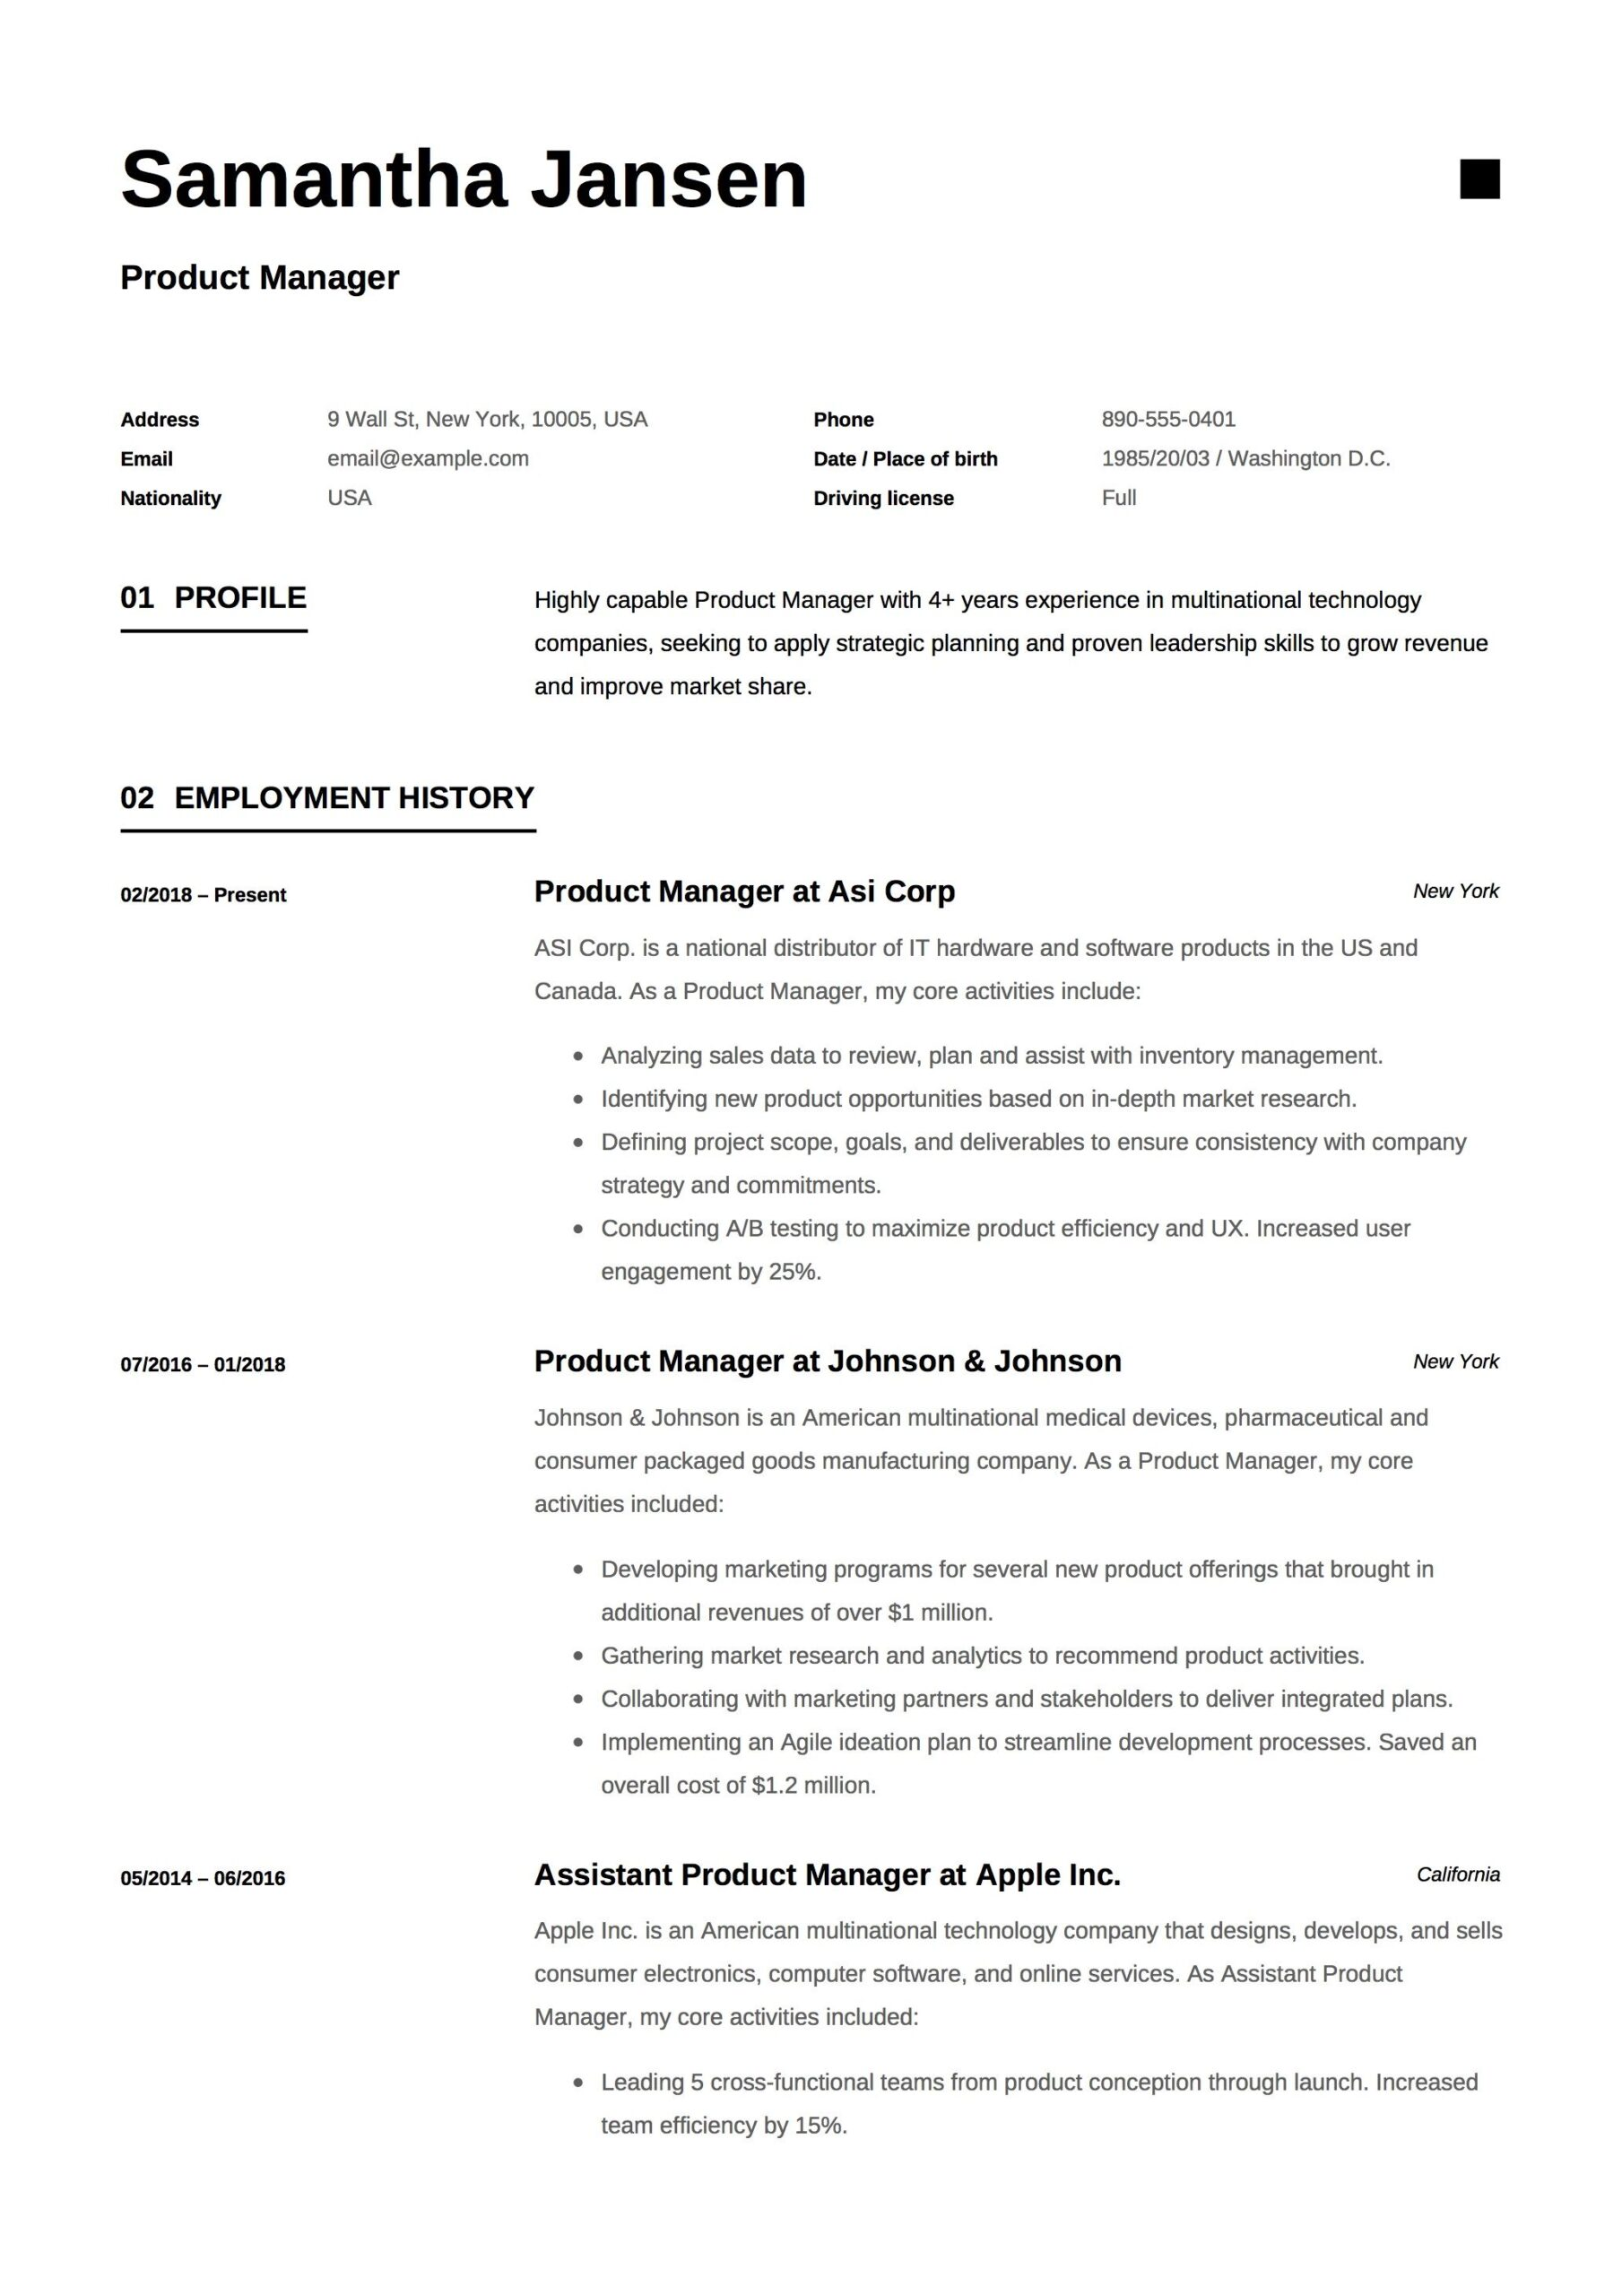 product manager resume sample template example cv formal design server guide examples Resume Product Manager Resume Sample